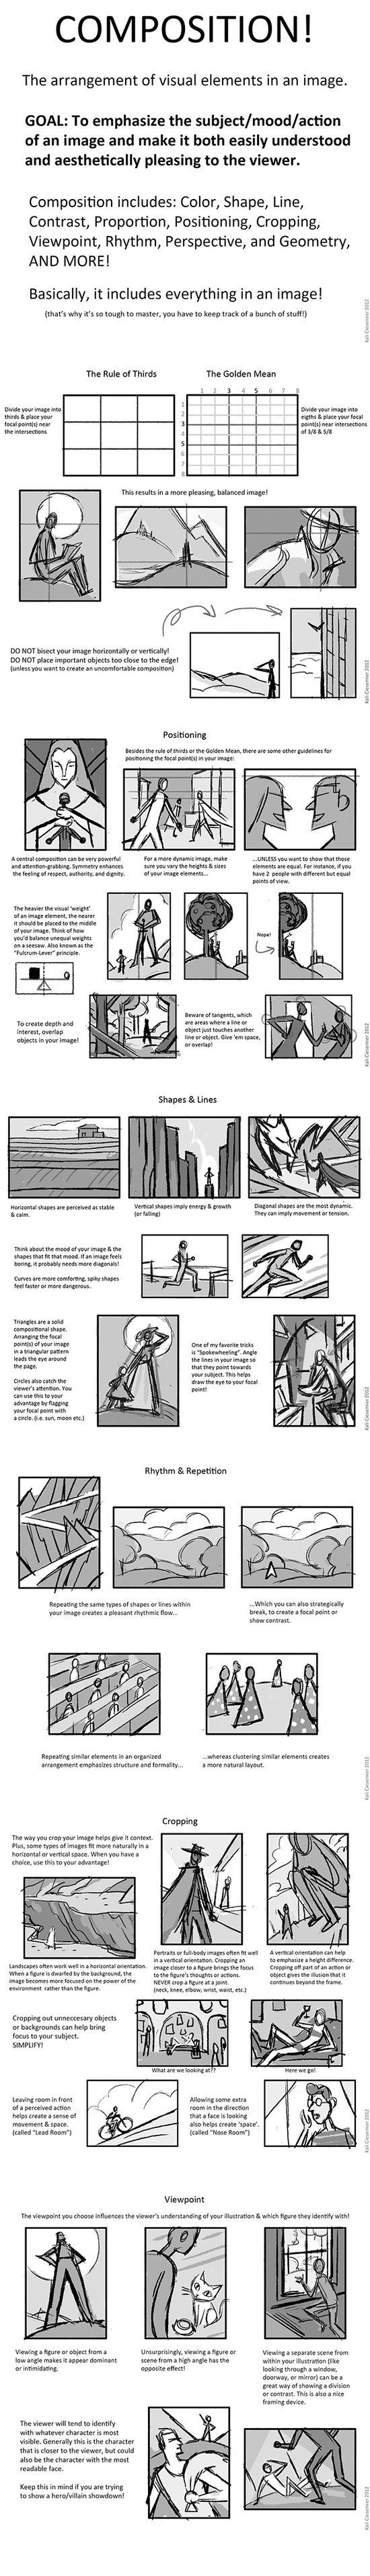 Composition techniques - these are some good guidelines to make an artwork, however there are always exceptions. There are no rules in art